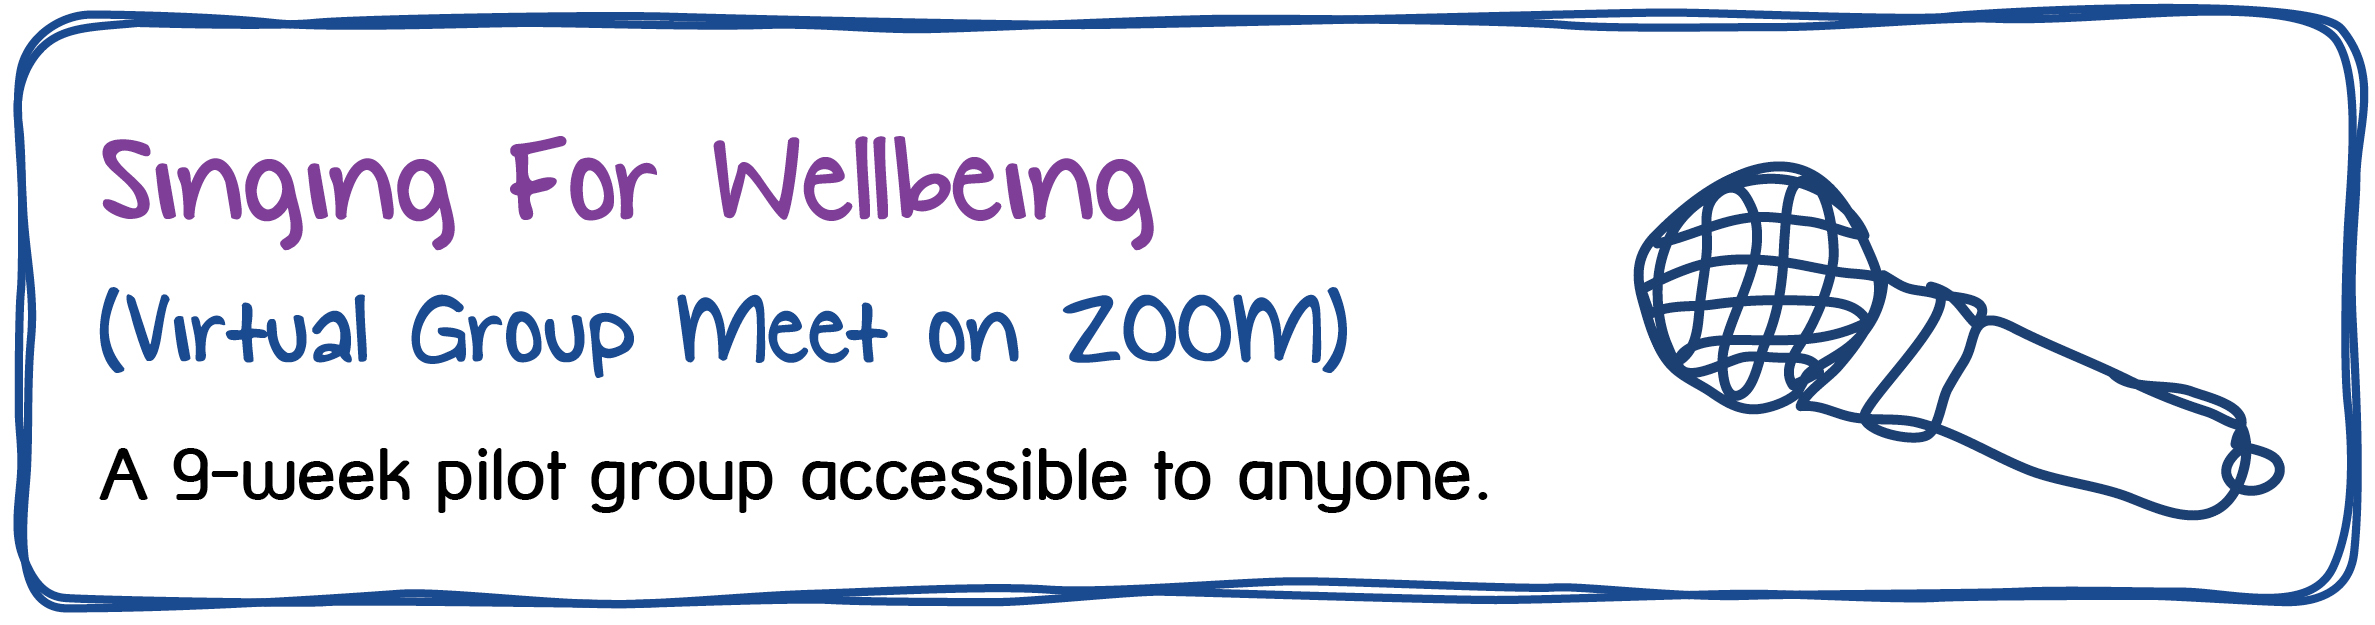 Singing For Wellbeing (Virtual Group Meet on ZOOM) A 9-week pilot group accessible to anyone.